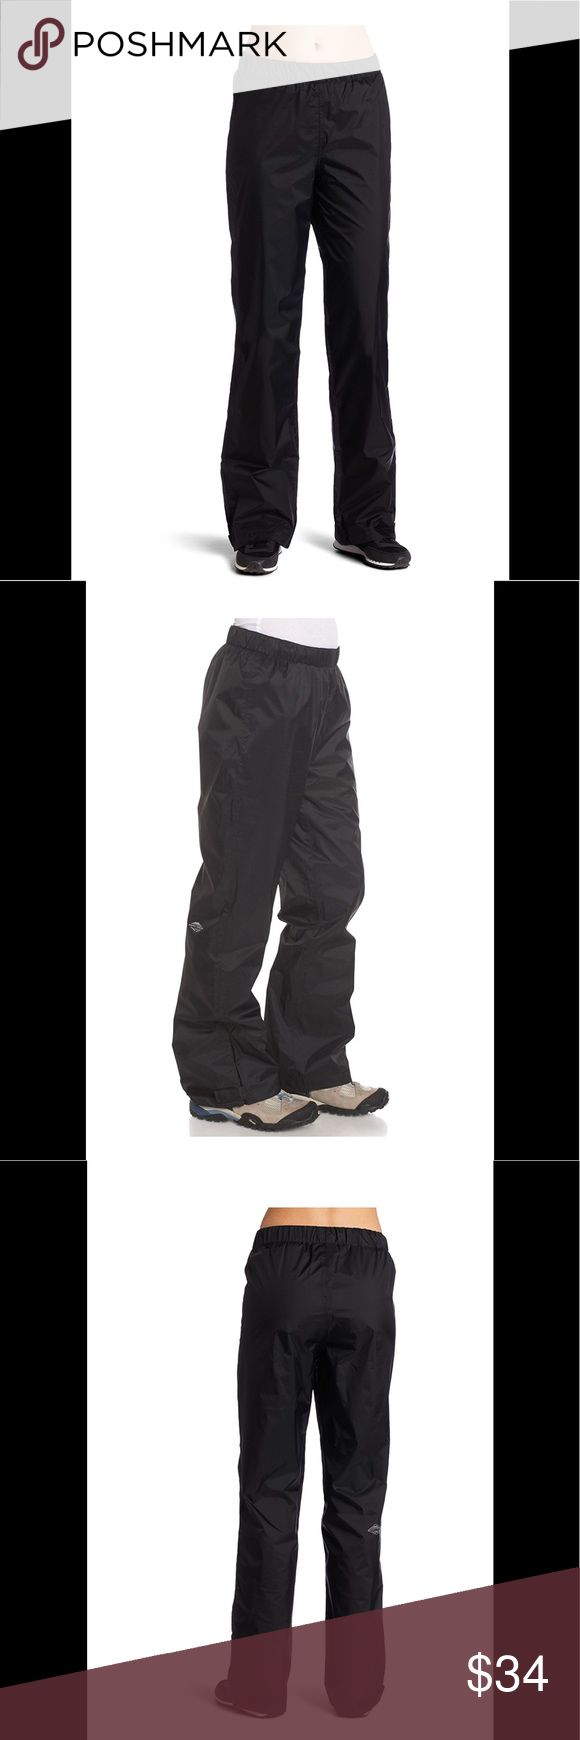 """NEW Columbia Storm Surge Pants New with tags. Columbia Sportswear """"Storm Surge Pant"""". Fully waterproof elastic waist pants. Women's size large in black. Retail $50.00. Columbia Pants"""